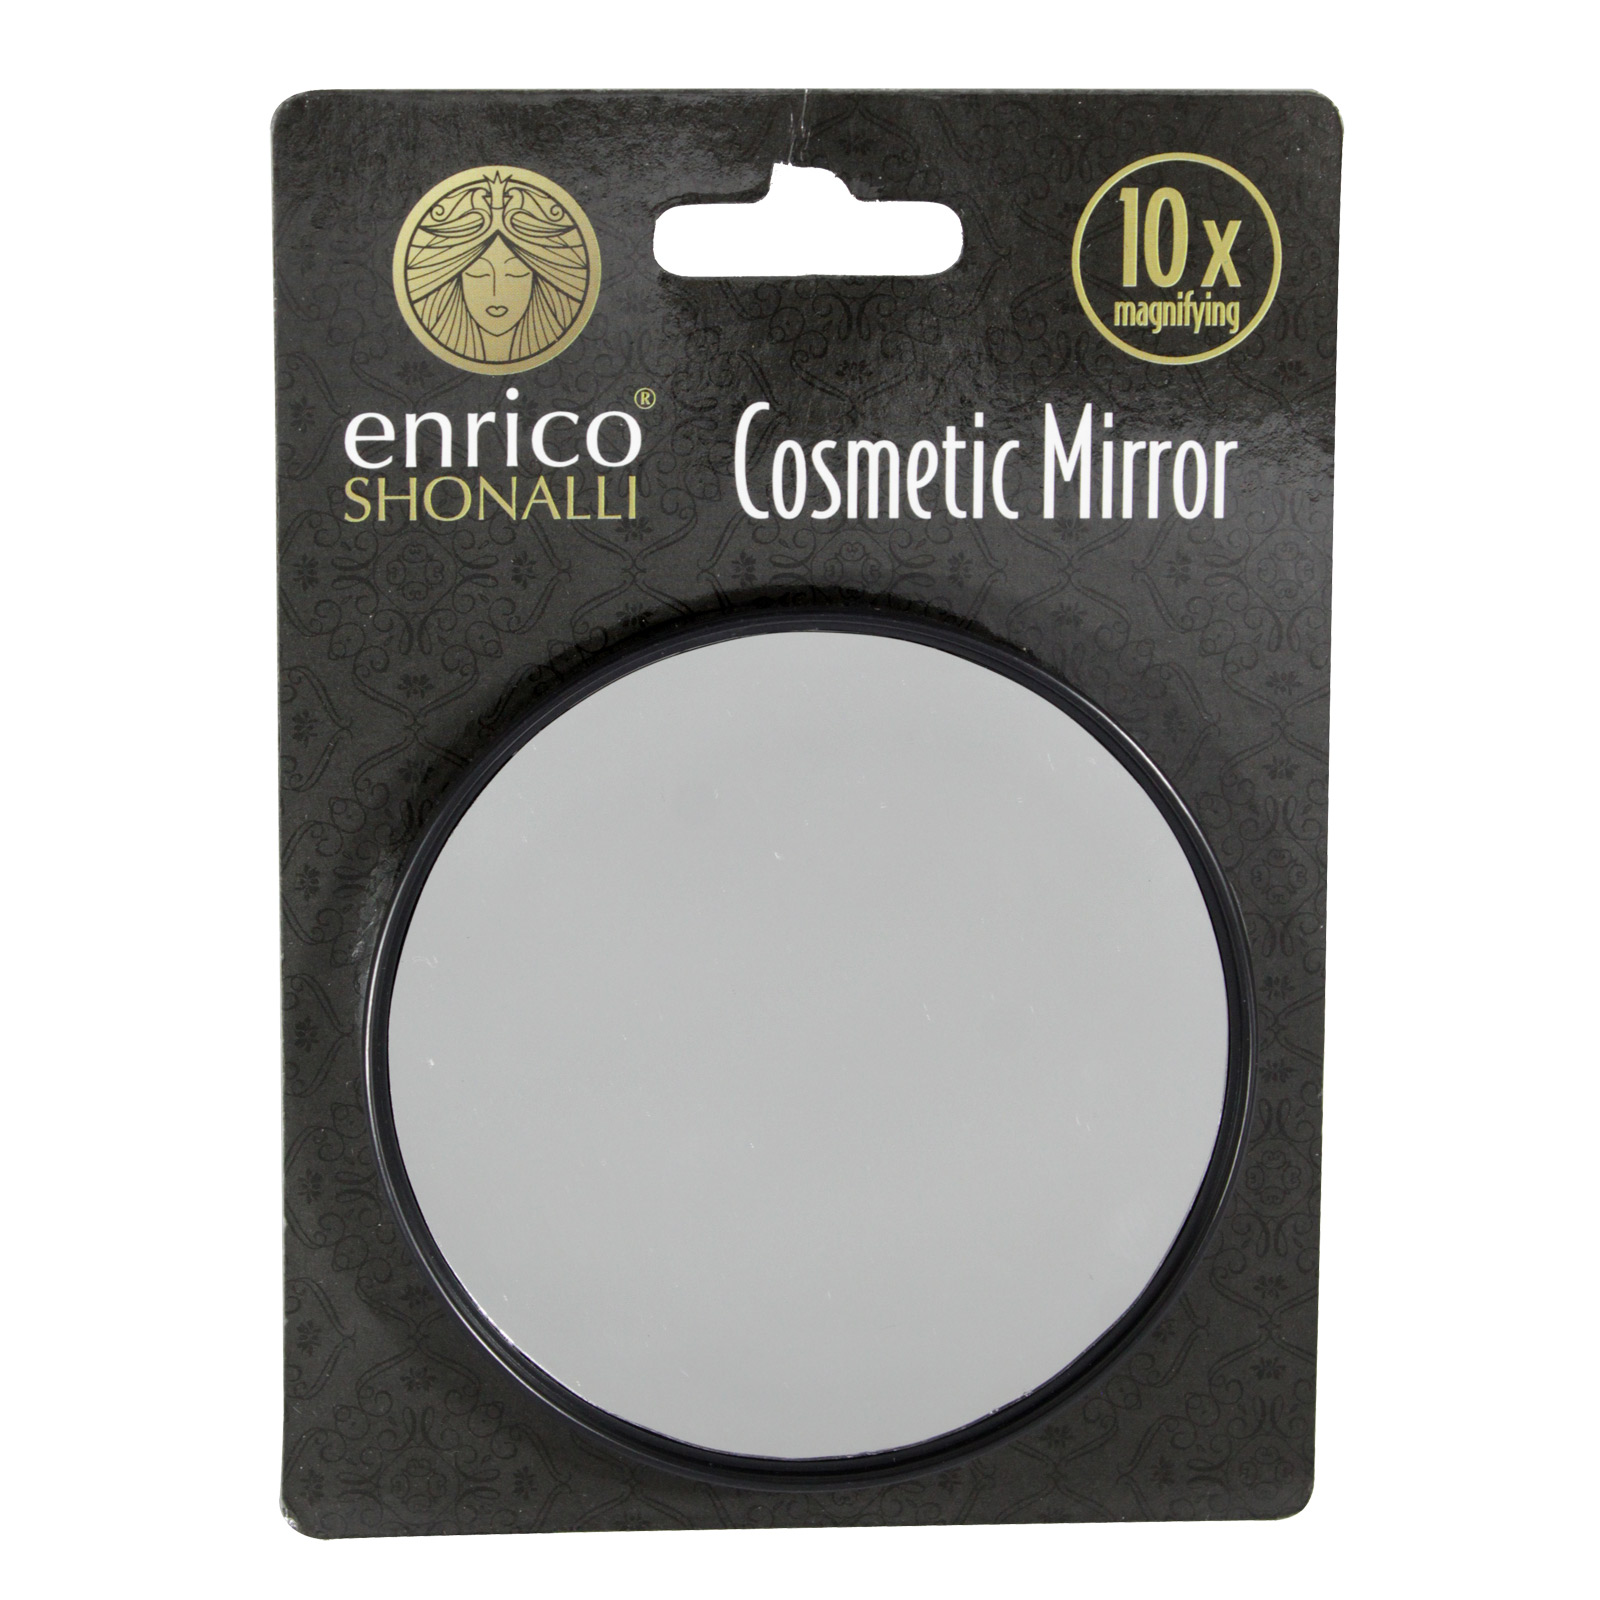 ENRICO COSMETIC MIRROR 10X MAGNIFYING